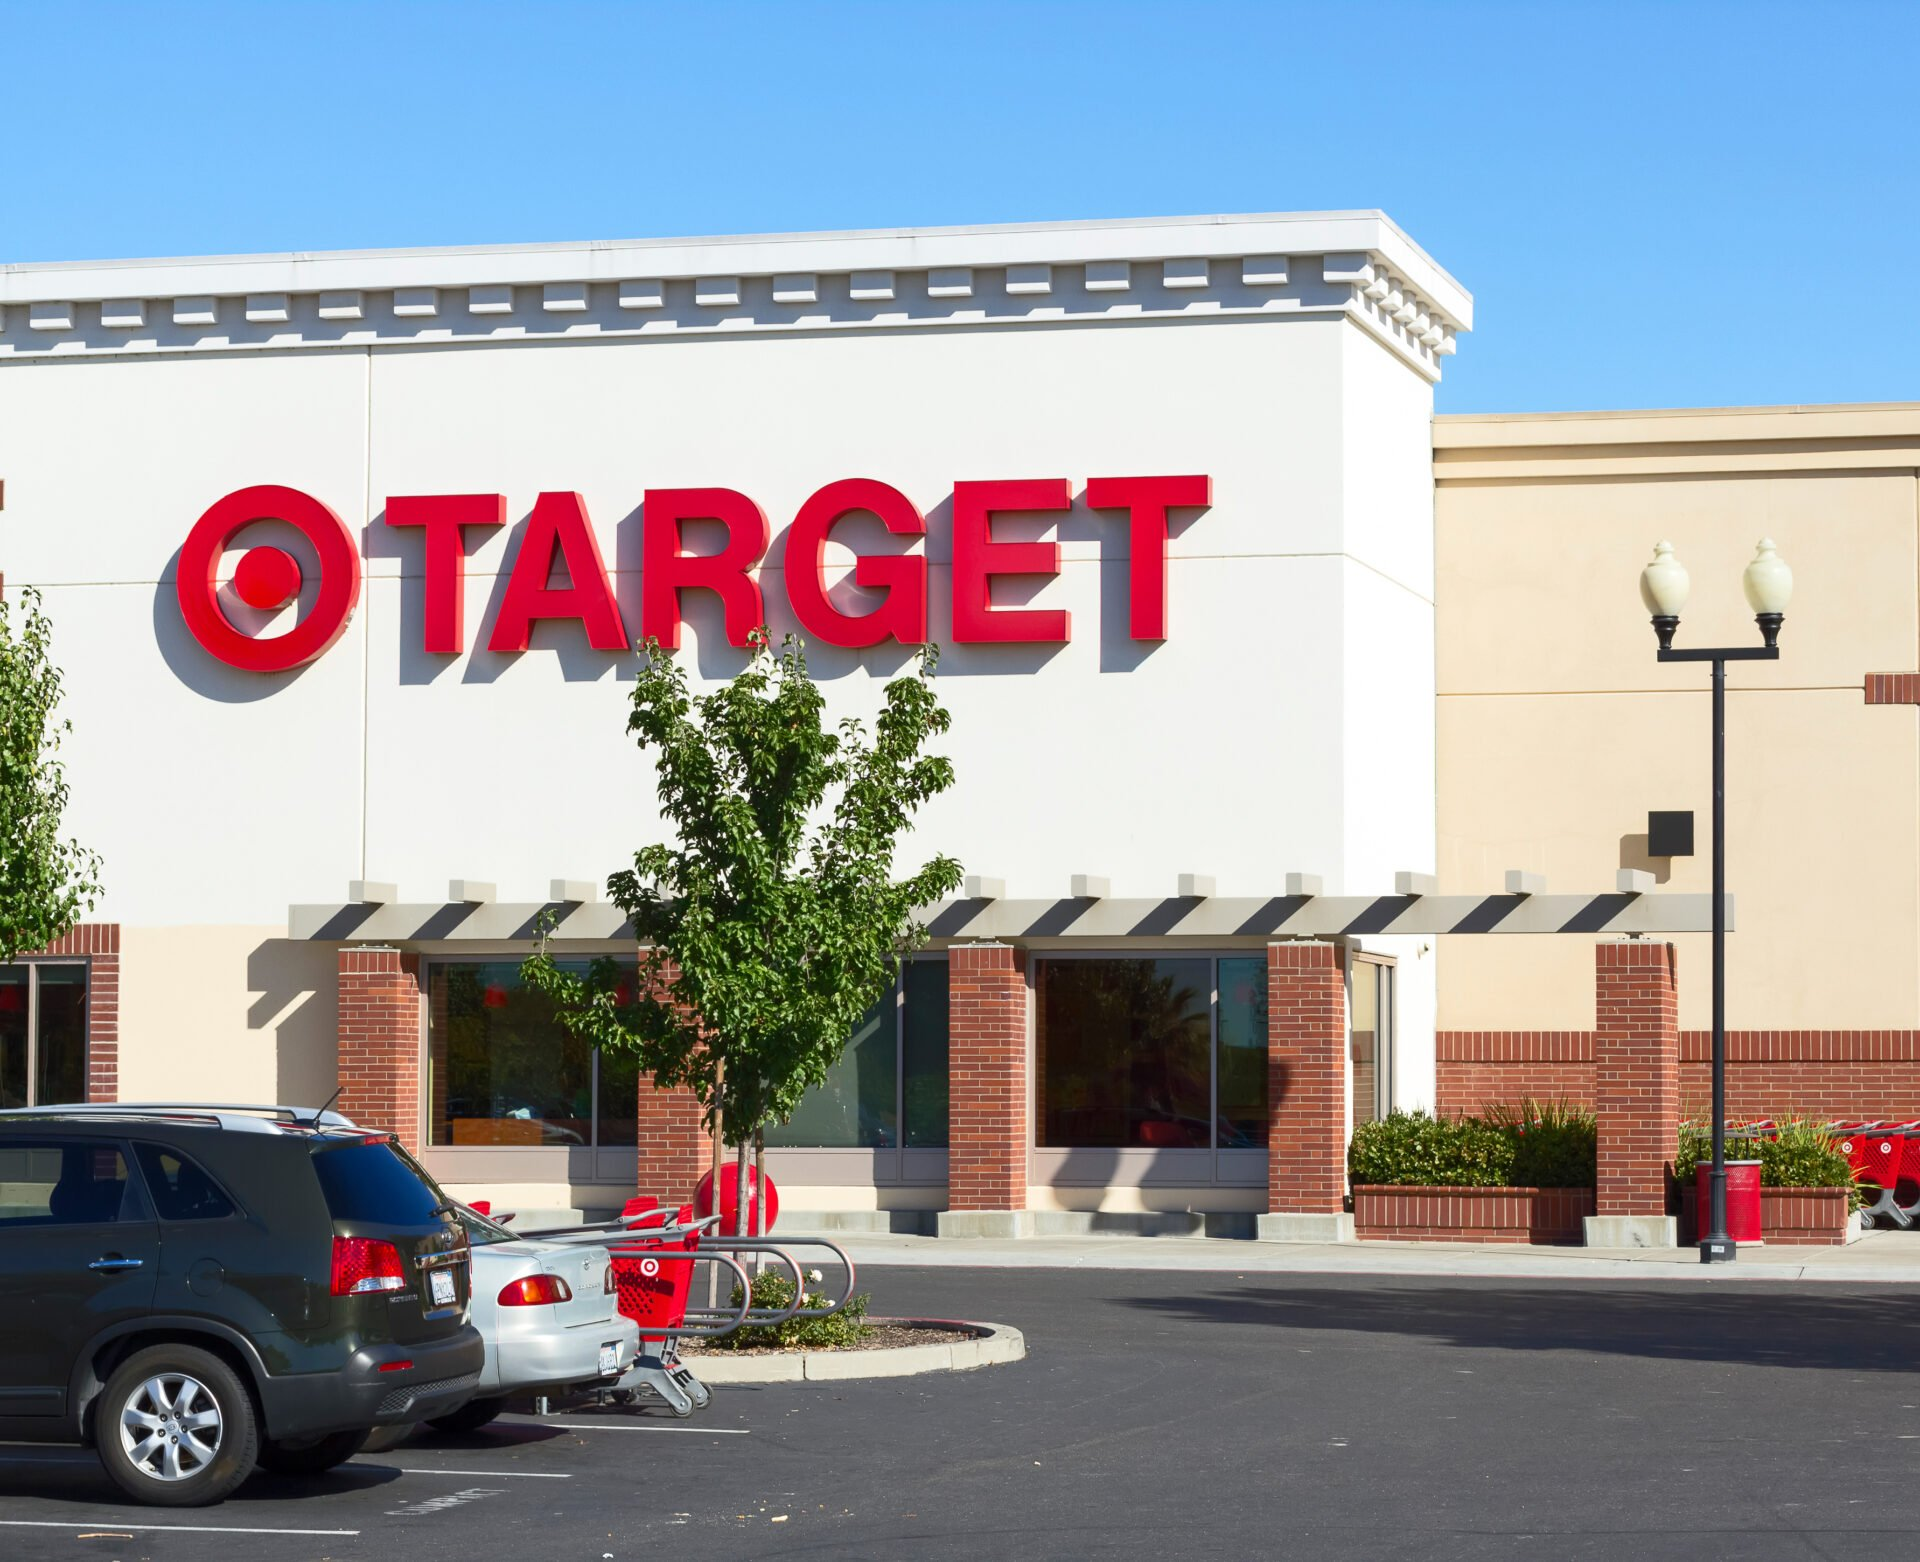 Target store on the outside